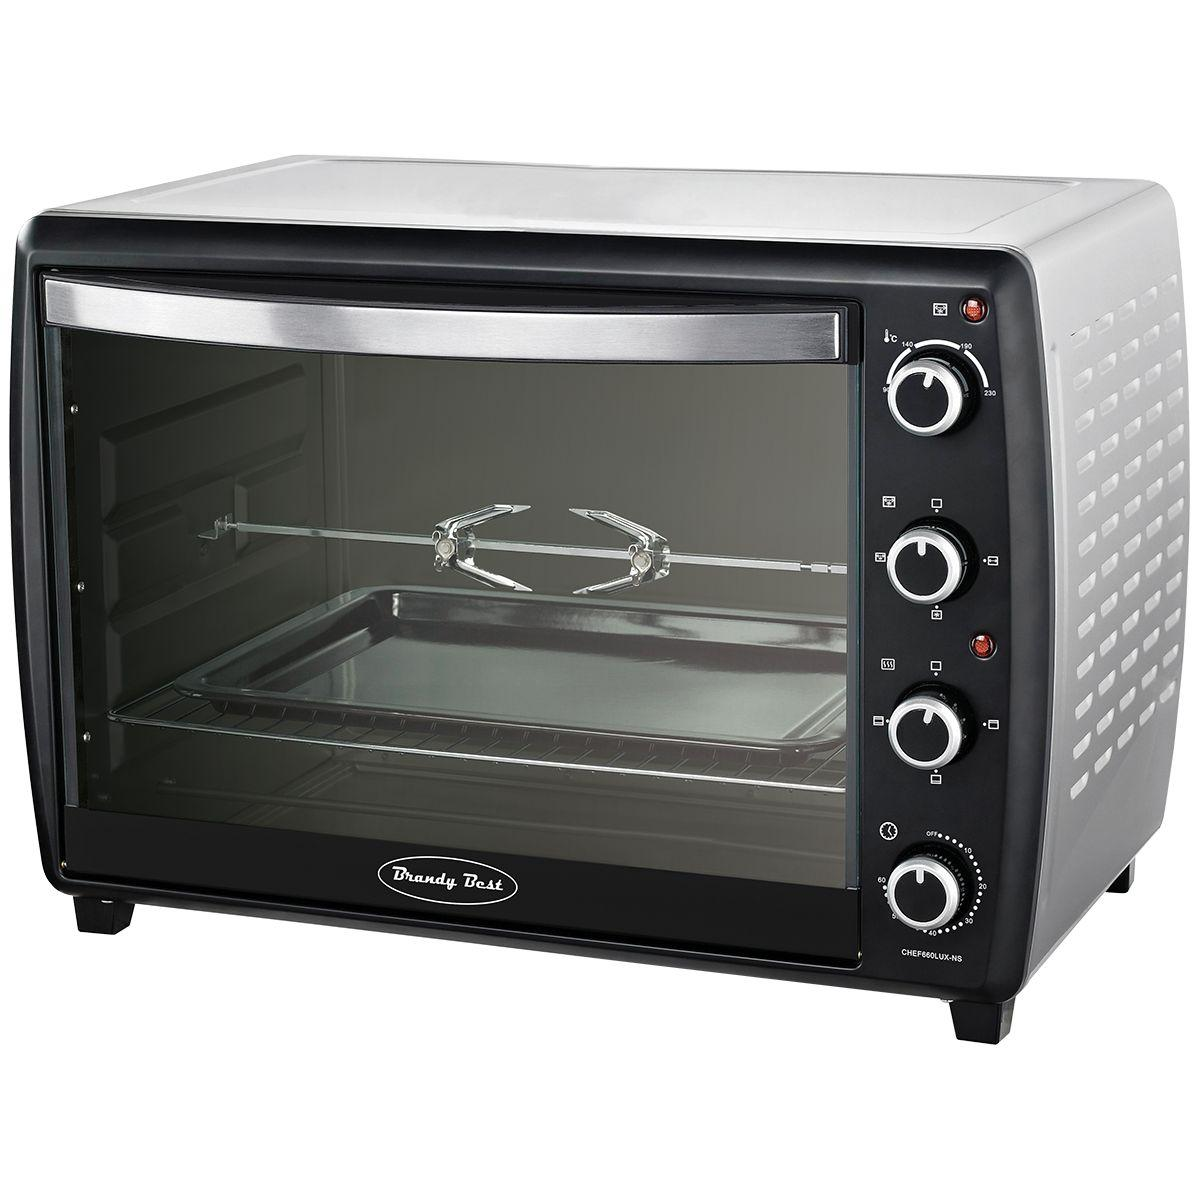 Mini four compact brandy best chef60lux-ns - 5% de remise immédiate avec le code : cool5 (photo)